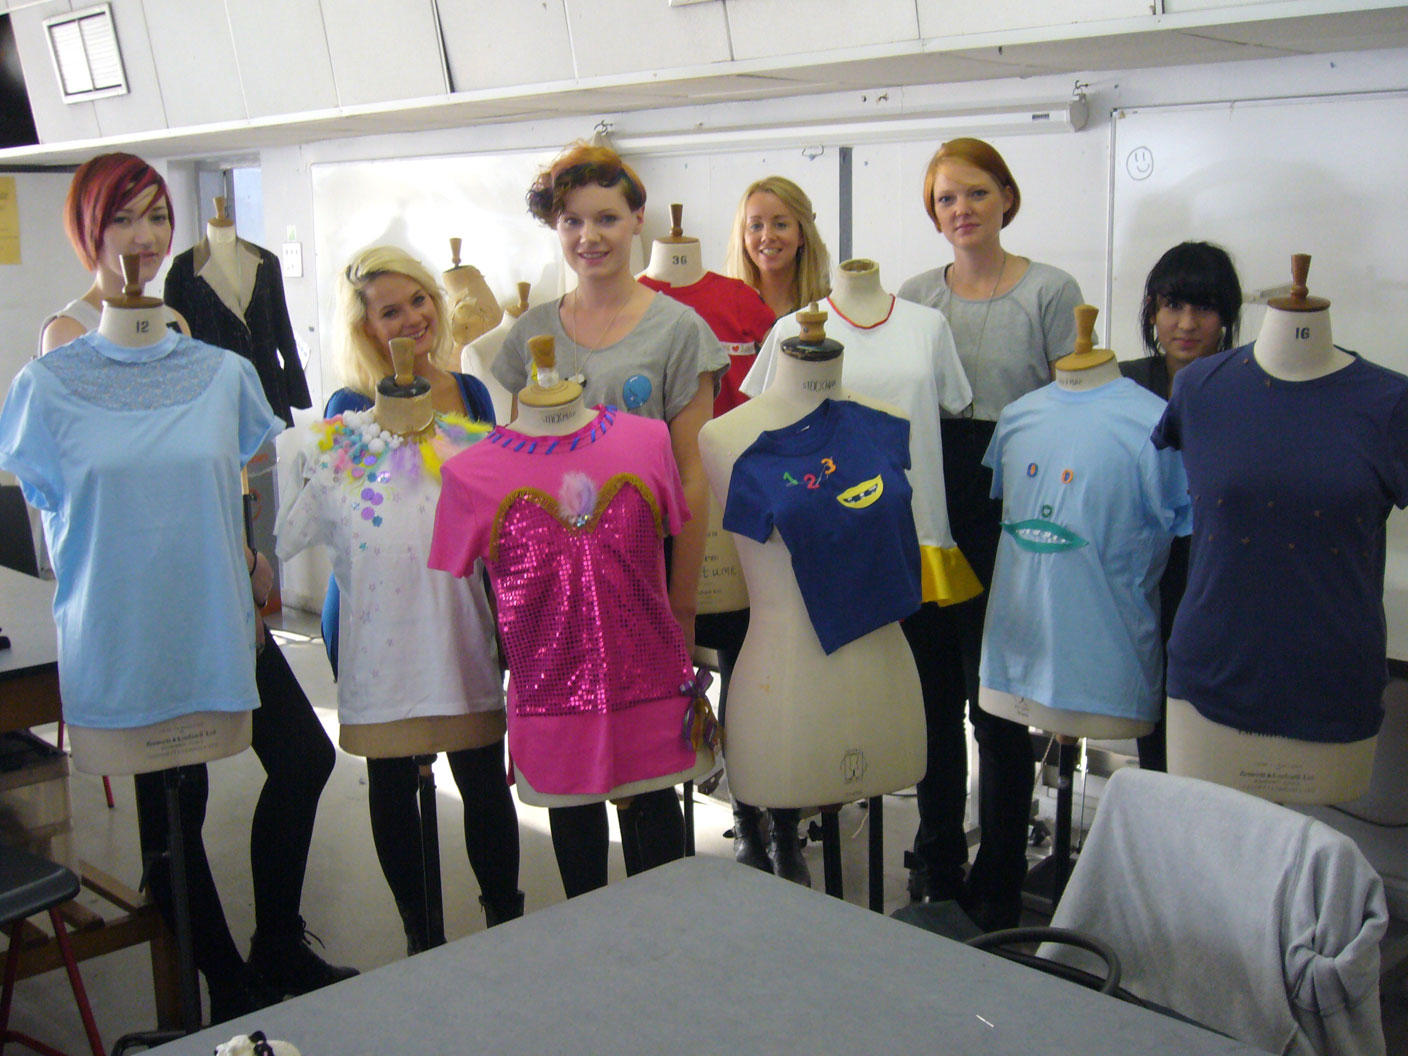 London colege of fashion 95